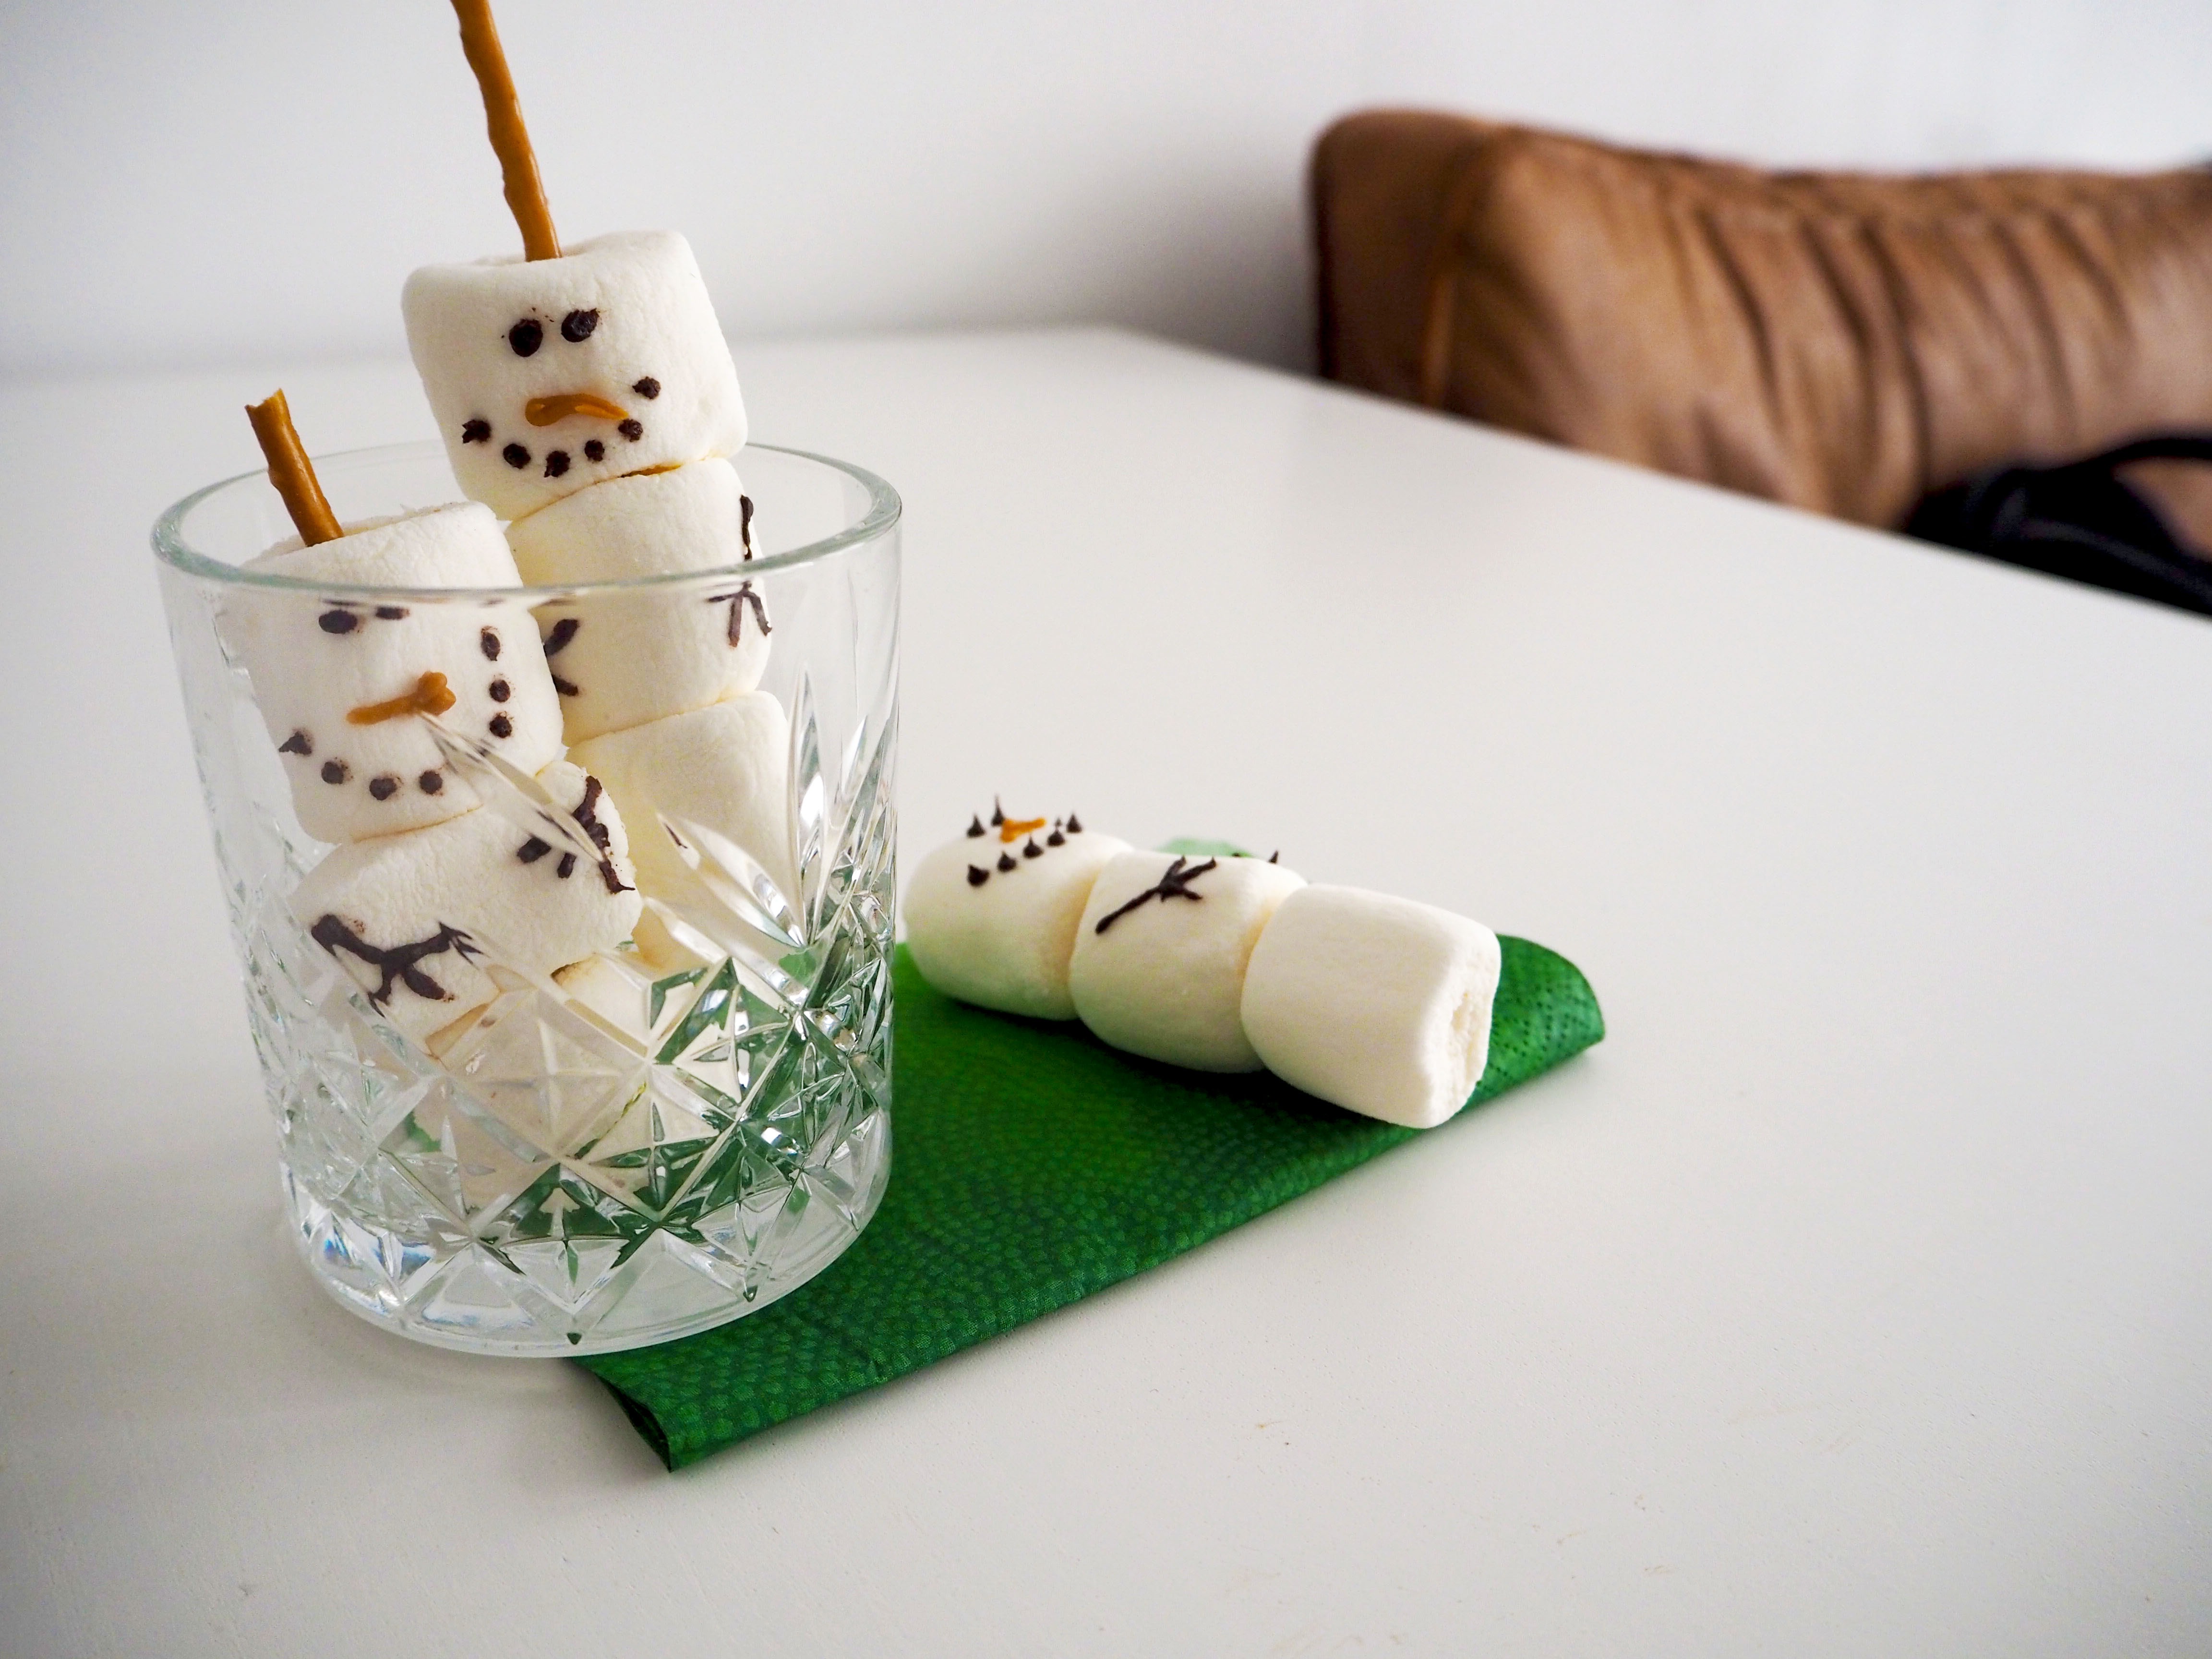 sneeuwpoppen van marshmallows en zoute sticks